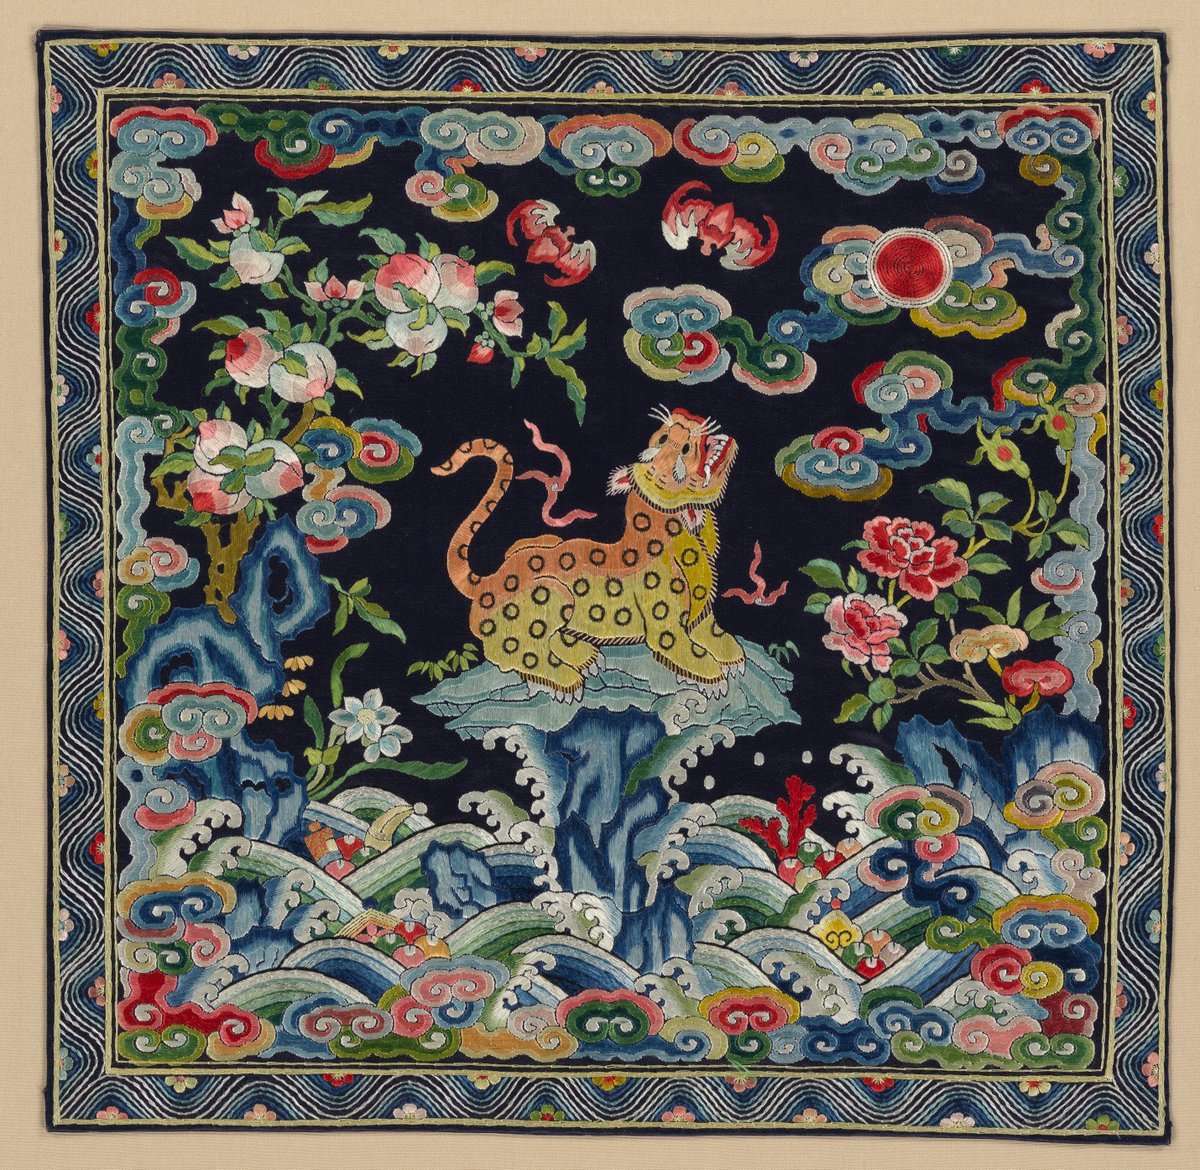 Sunday, July 22, is the last day to see 'Spirited Creatures.' This exhibition explores how real and mythical animals—such as the dragon, unicorn, phoenix, lion, ox, and butterfly—are depicted on luxury materials of late imperial China. https://t.co/26fh5YWR8i